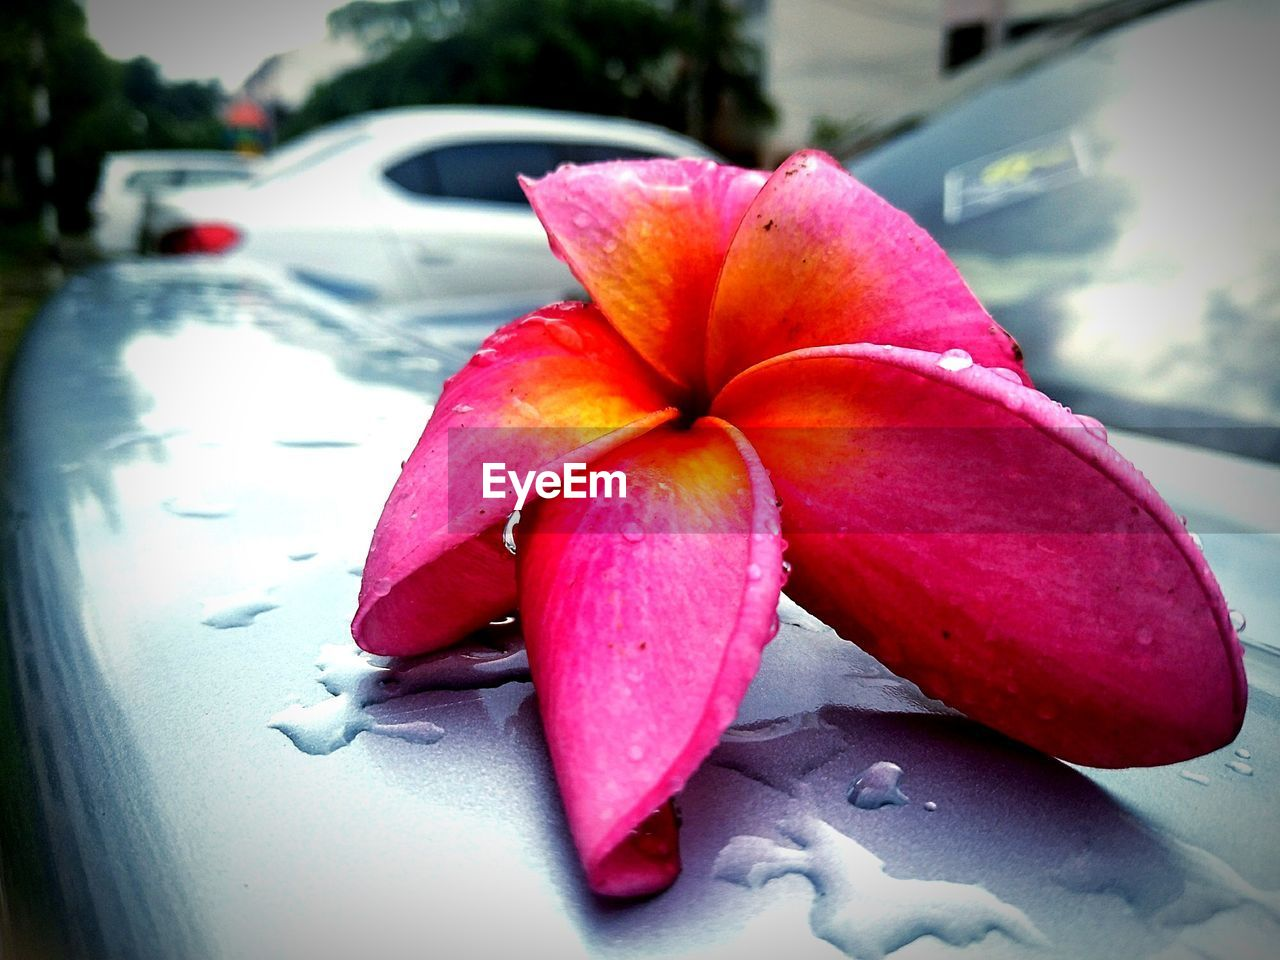 car, close-up, motor vehicle, freshness, red, land vehicle, no people, pink color, mode of transportation, day, focus on foreground, transportation, fruit, outdoors, plant, flower, food and drink, nature, healthy eating, vulnerability